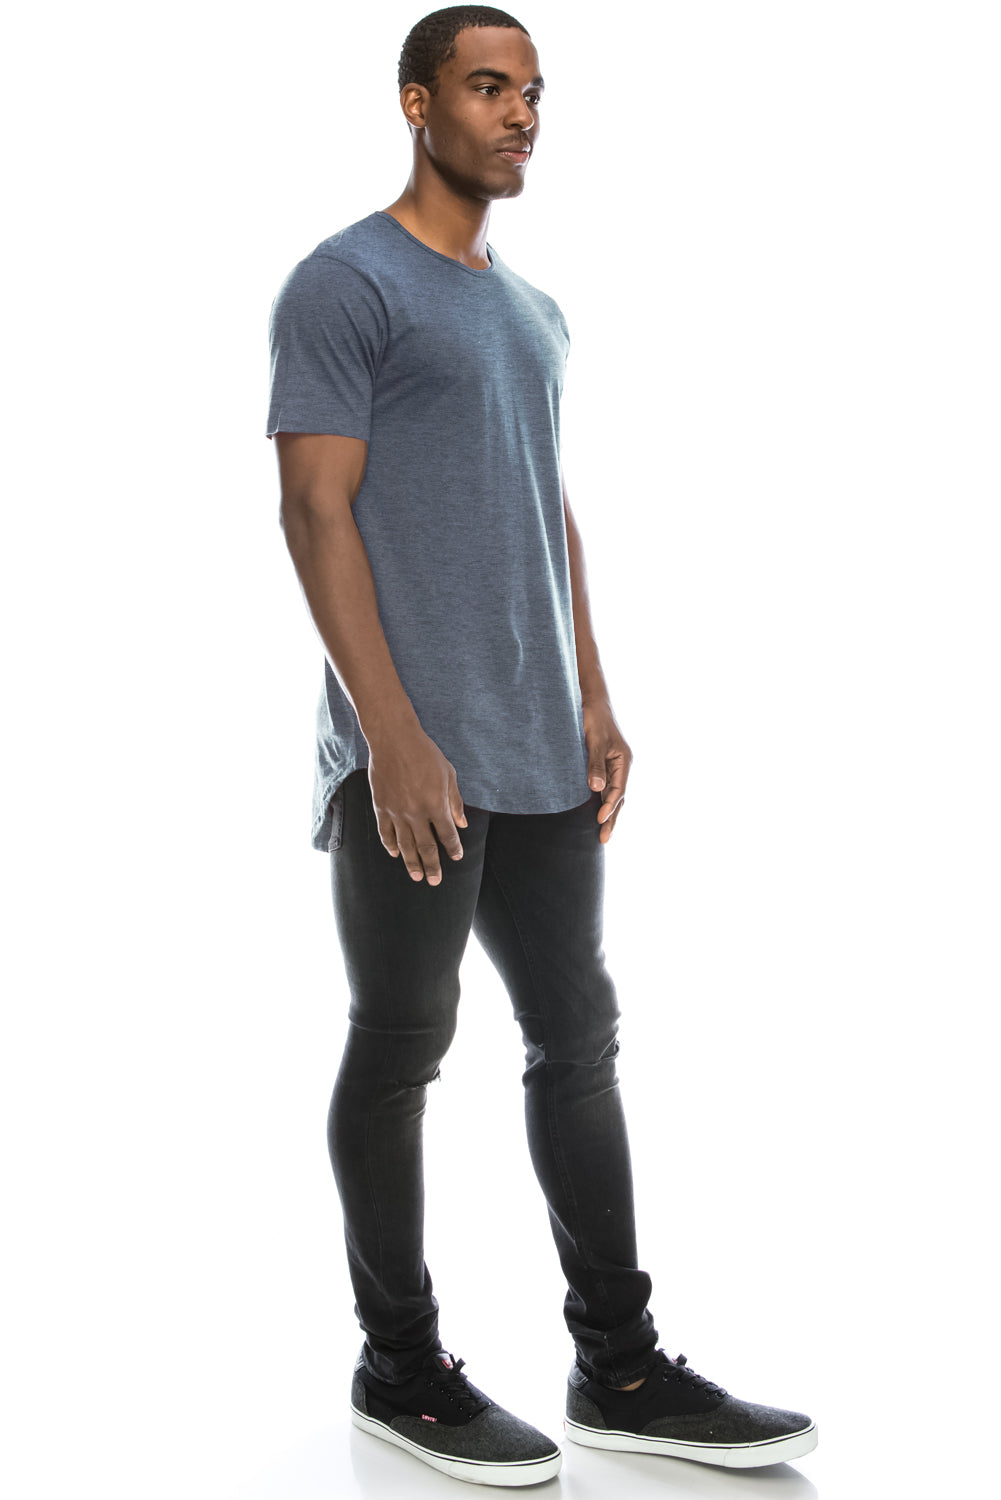 Drop Cut Longline T-Shirt - Dusty Blue